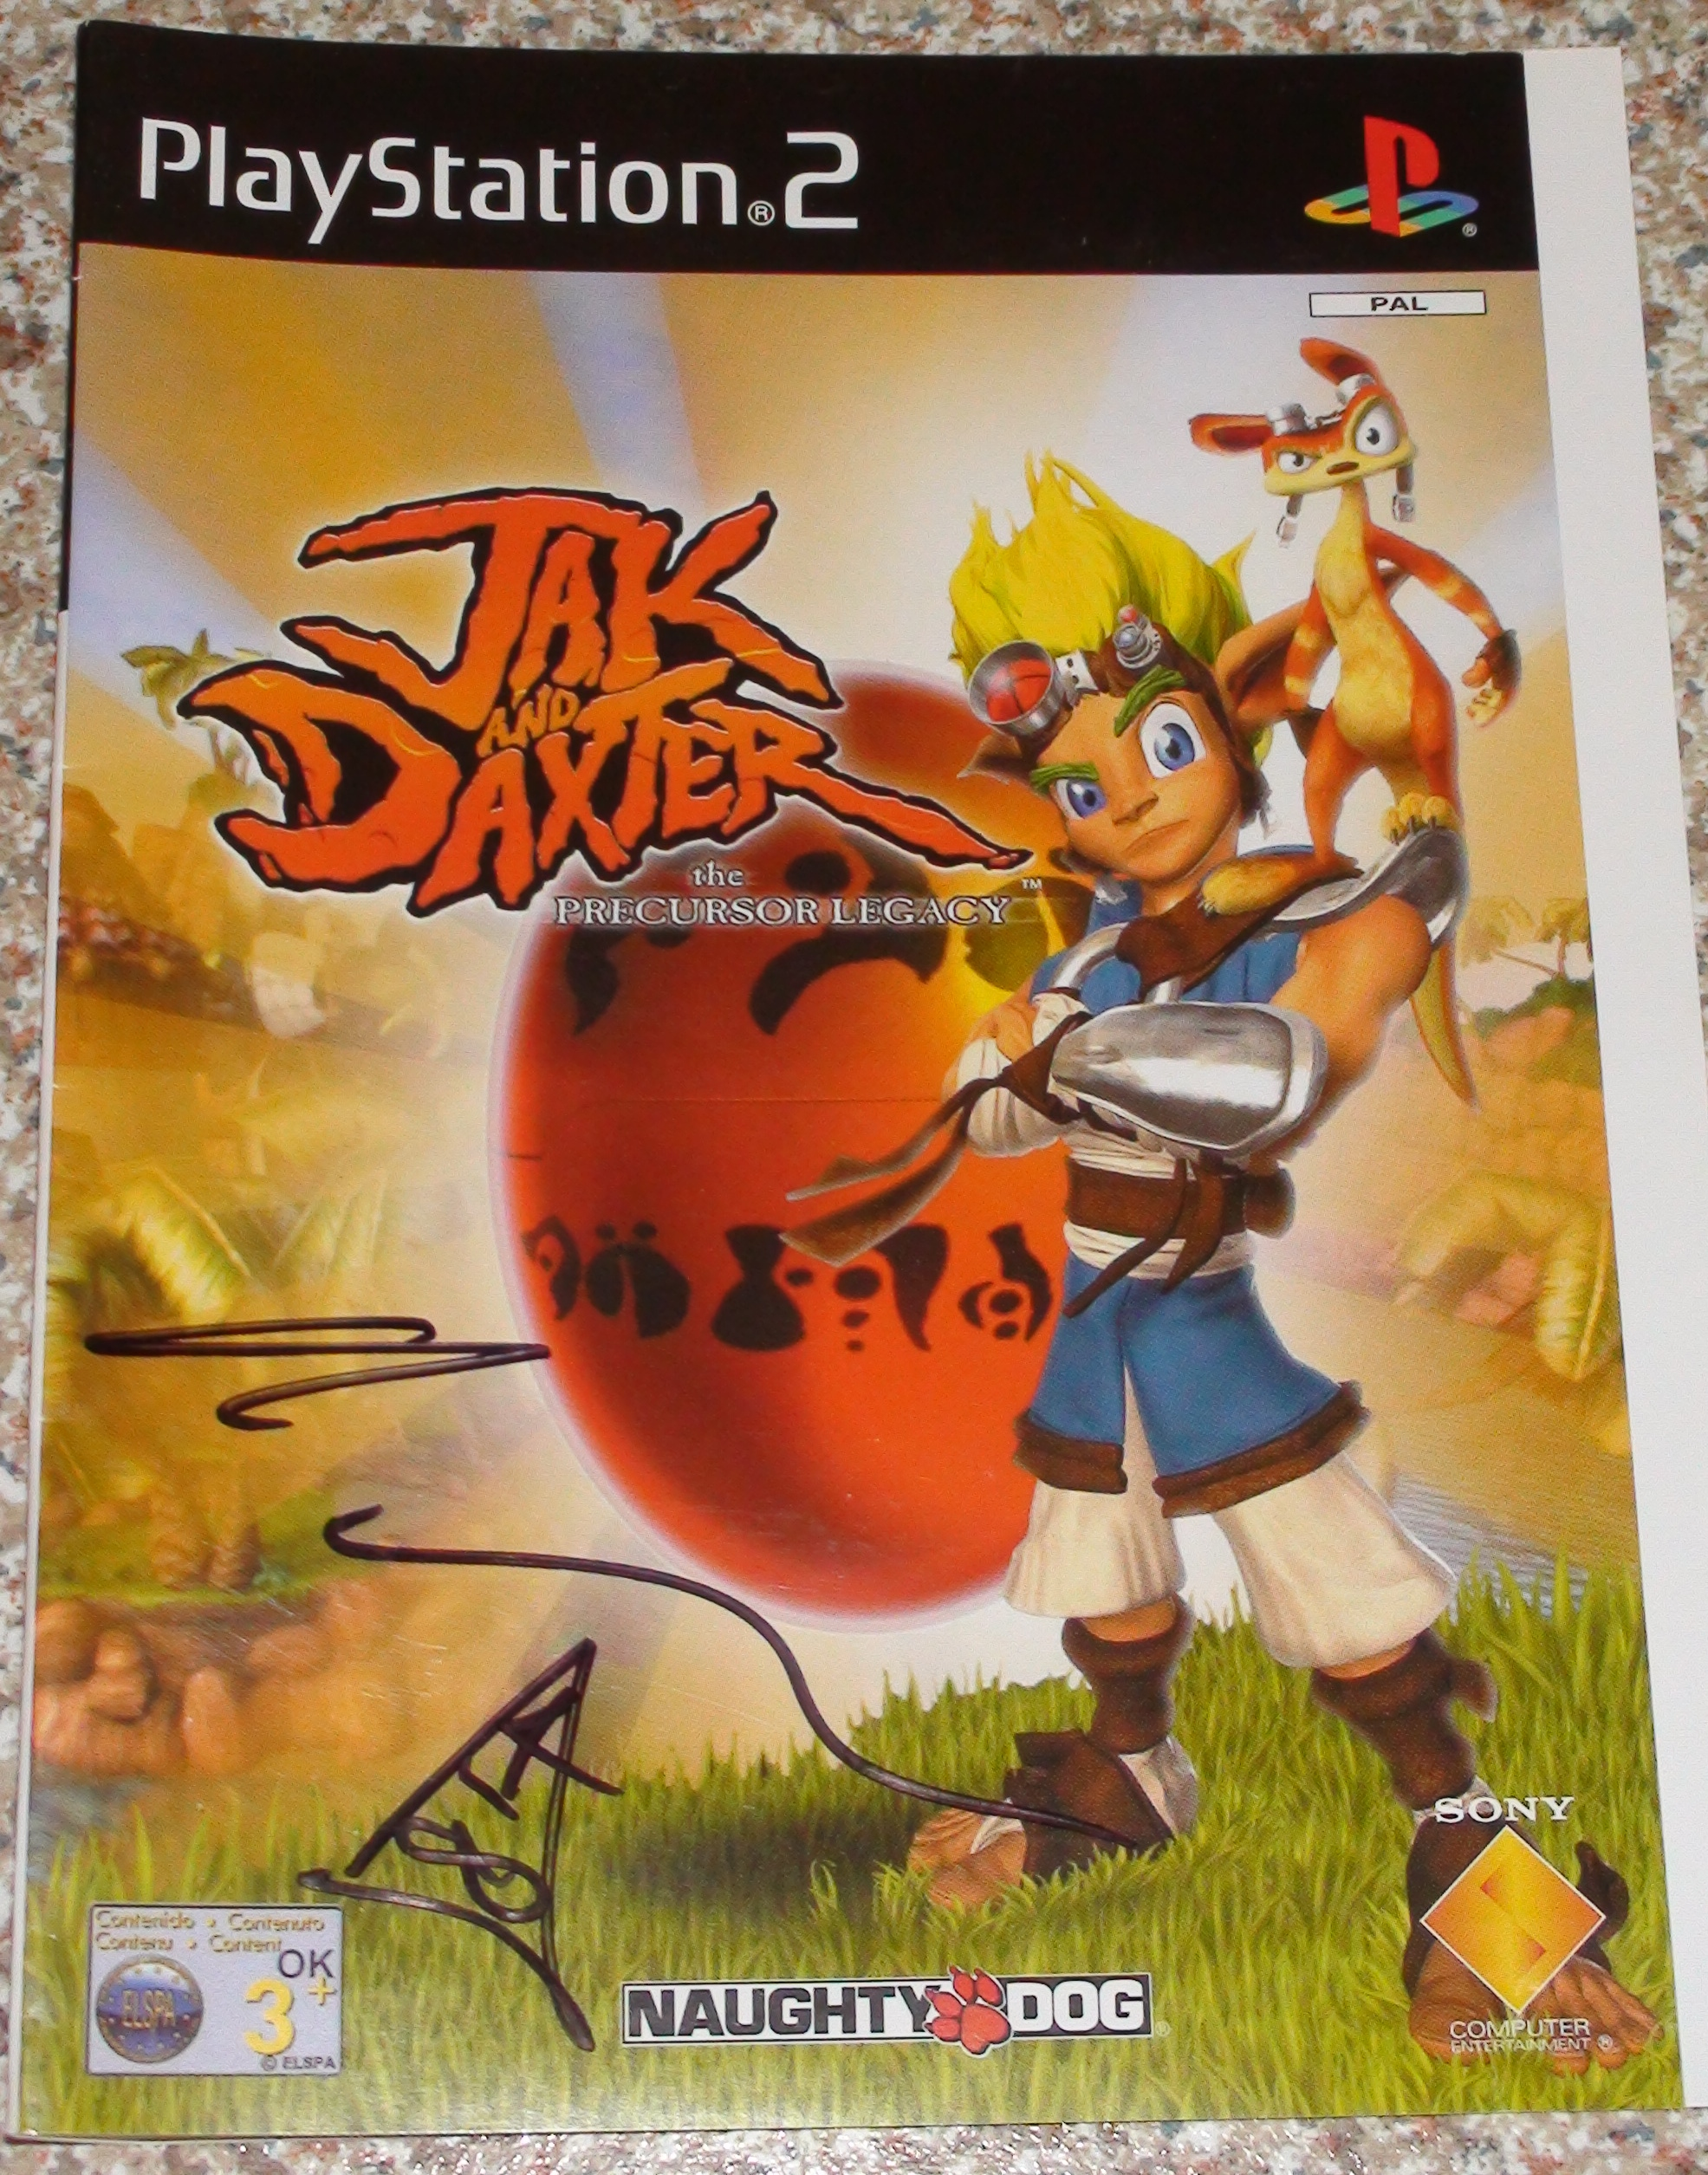 Jak and Daxter - Andy Gavin